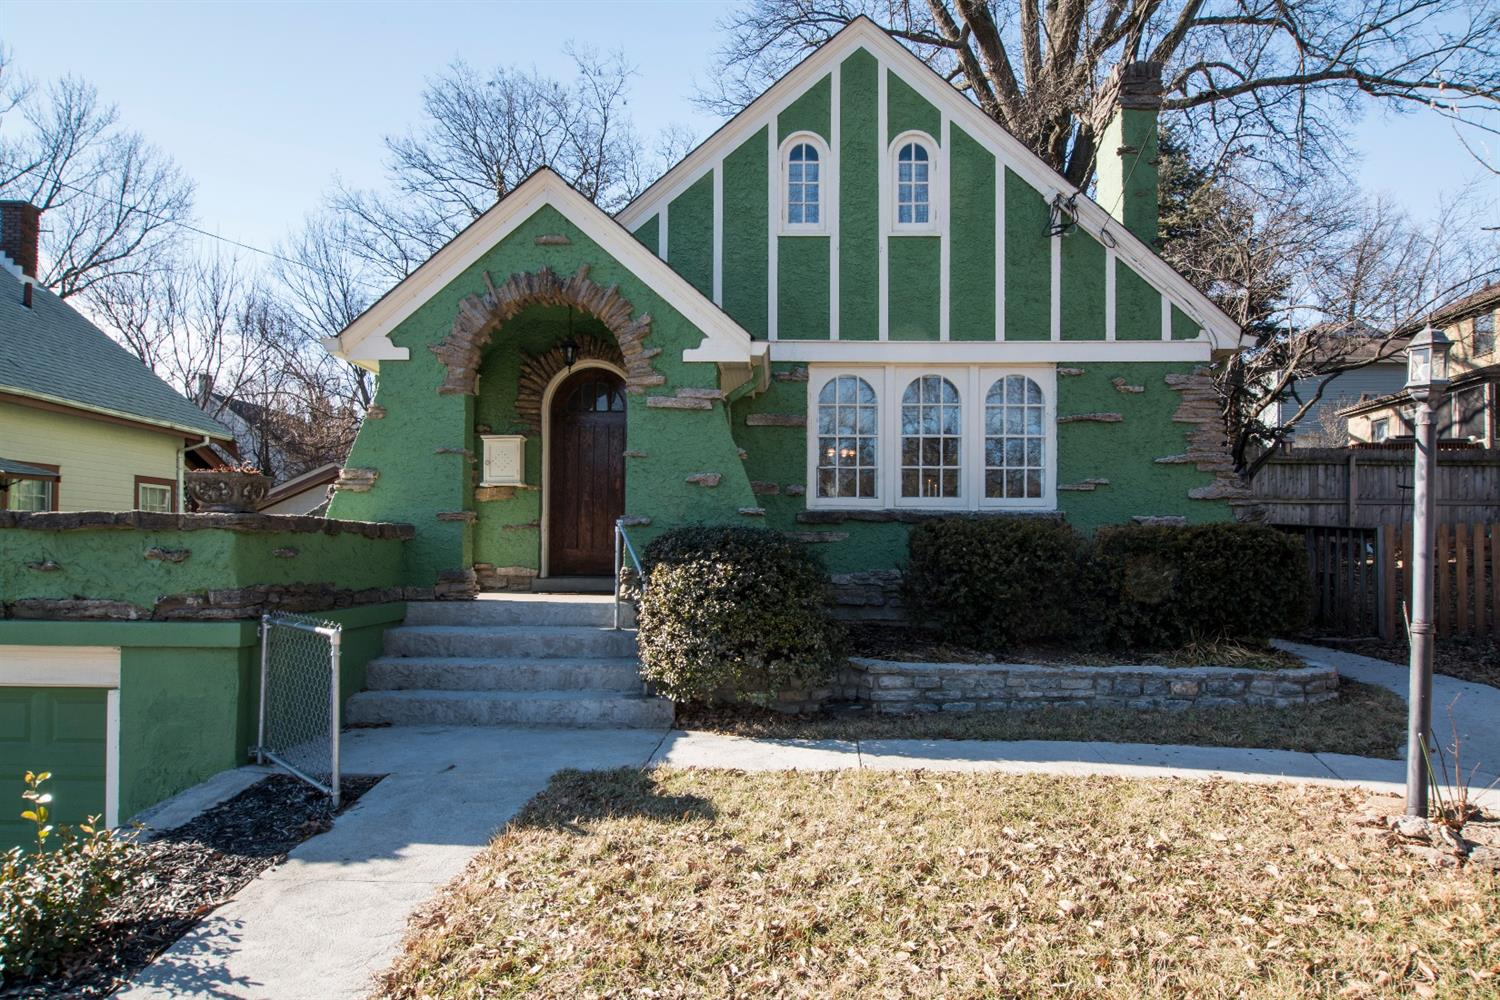 Delightful Tudor located in highly desirable Pleasant Ridge. Hardwood floors, new appliances and a master bedroom featuring a large walk-in closet and built-in drawers.